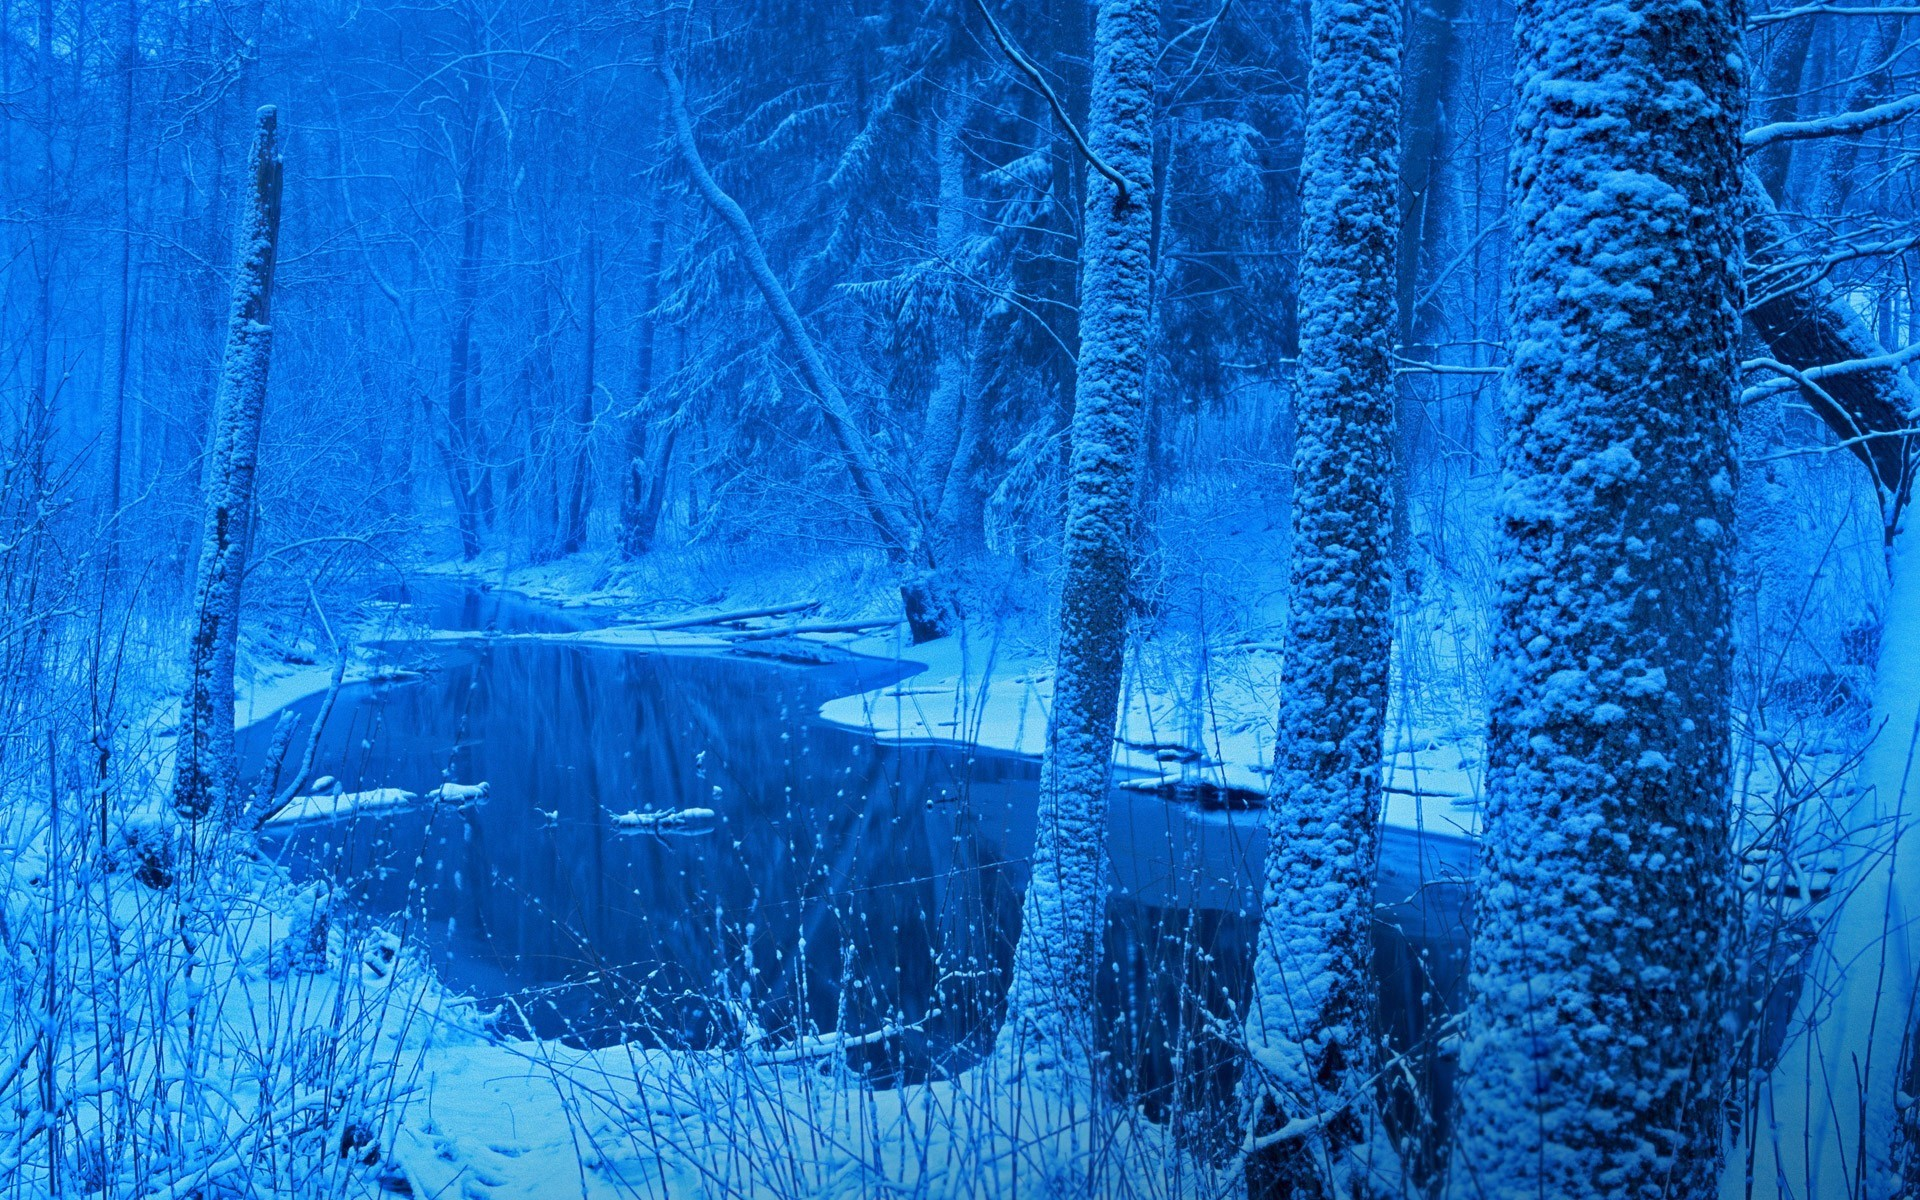 Free Awesome winter wallpaper – winter category